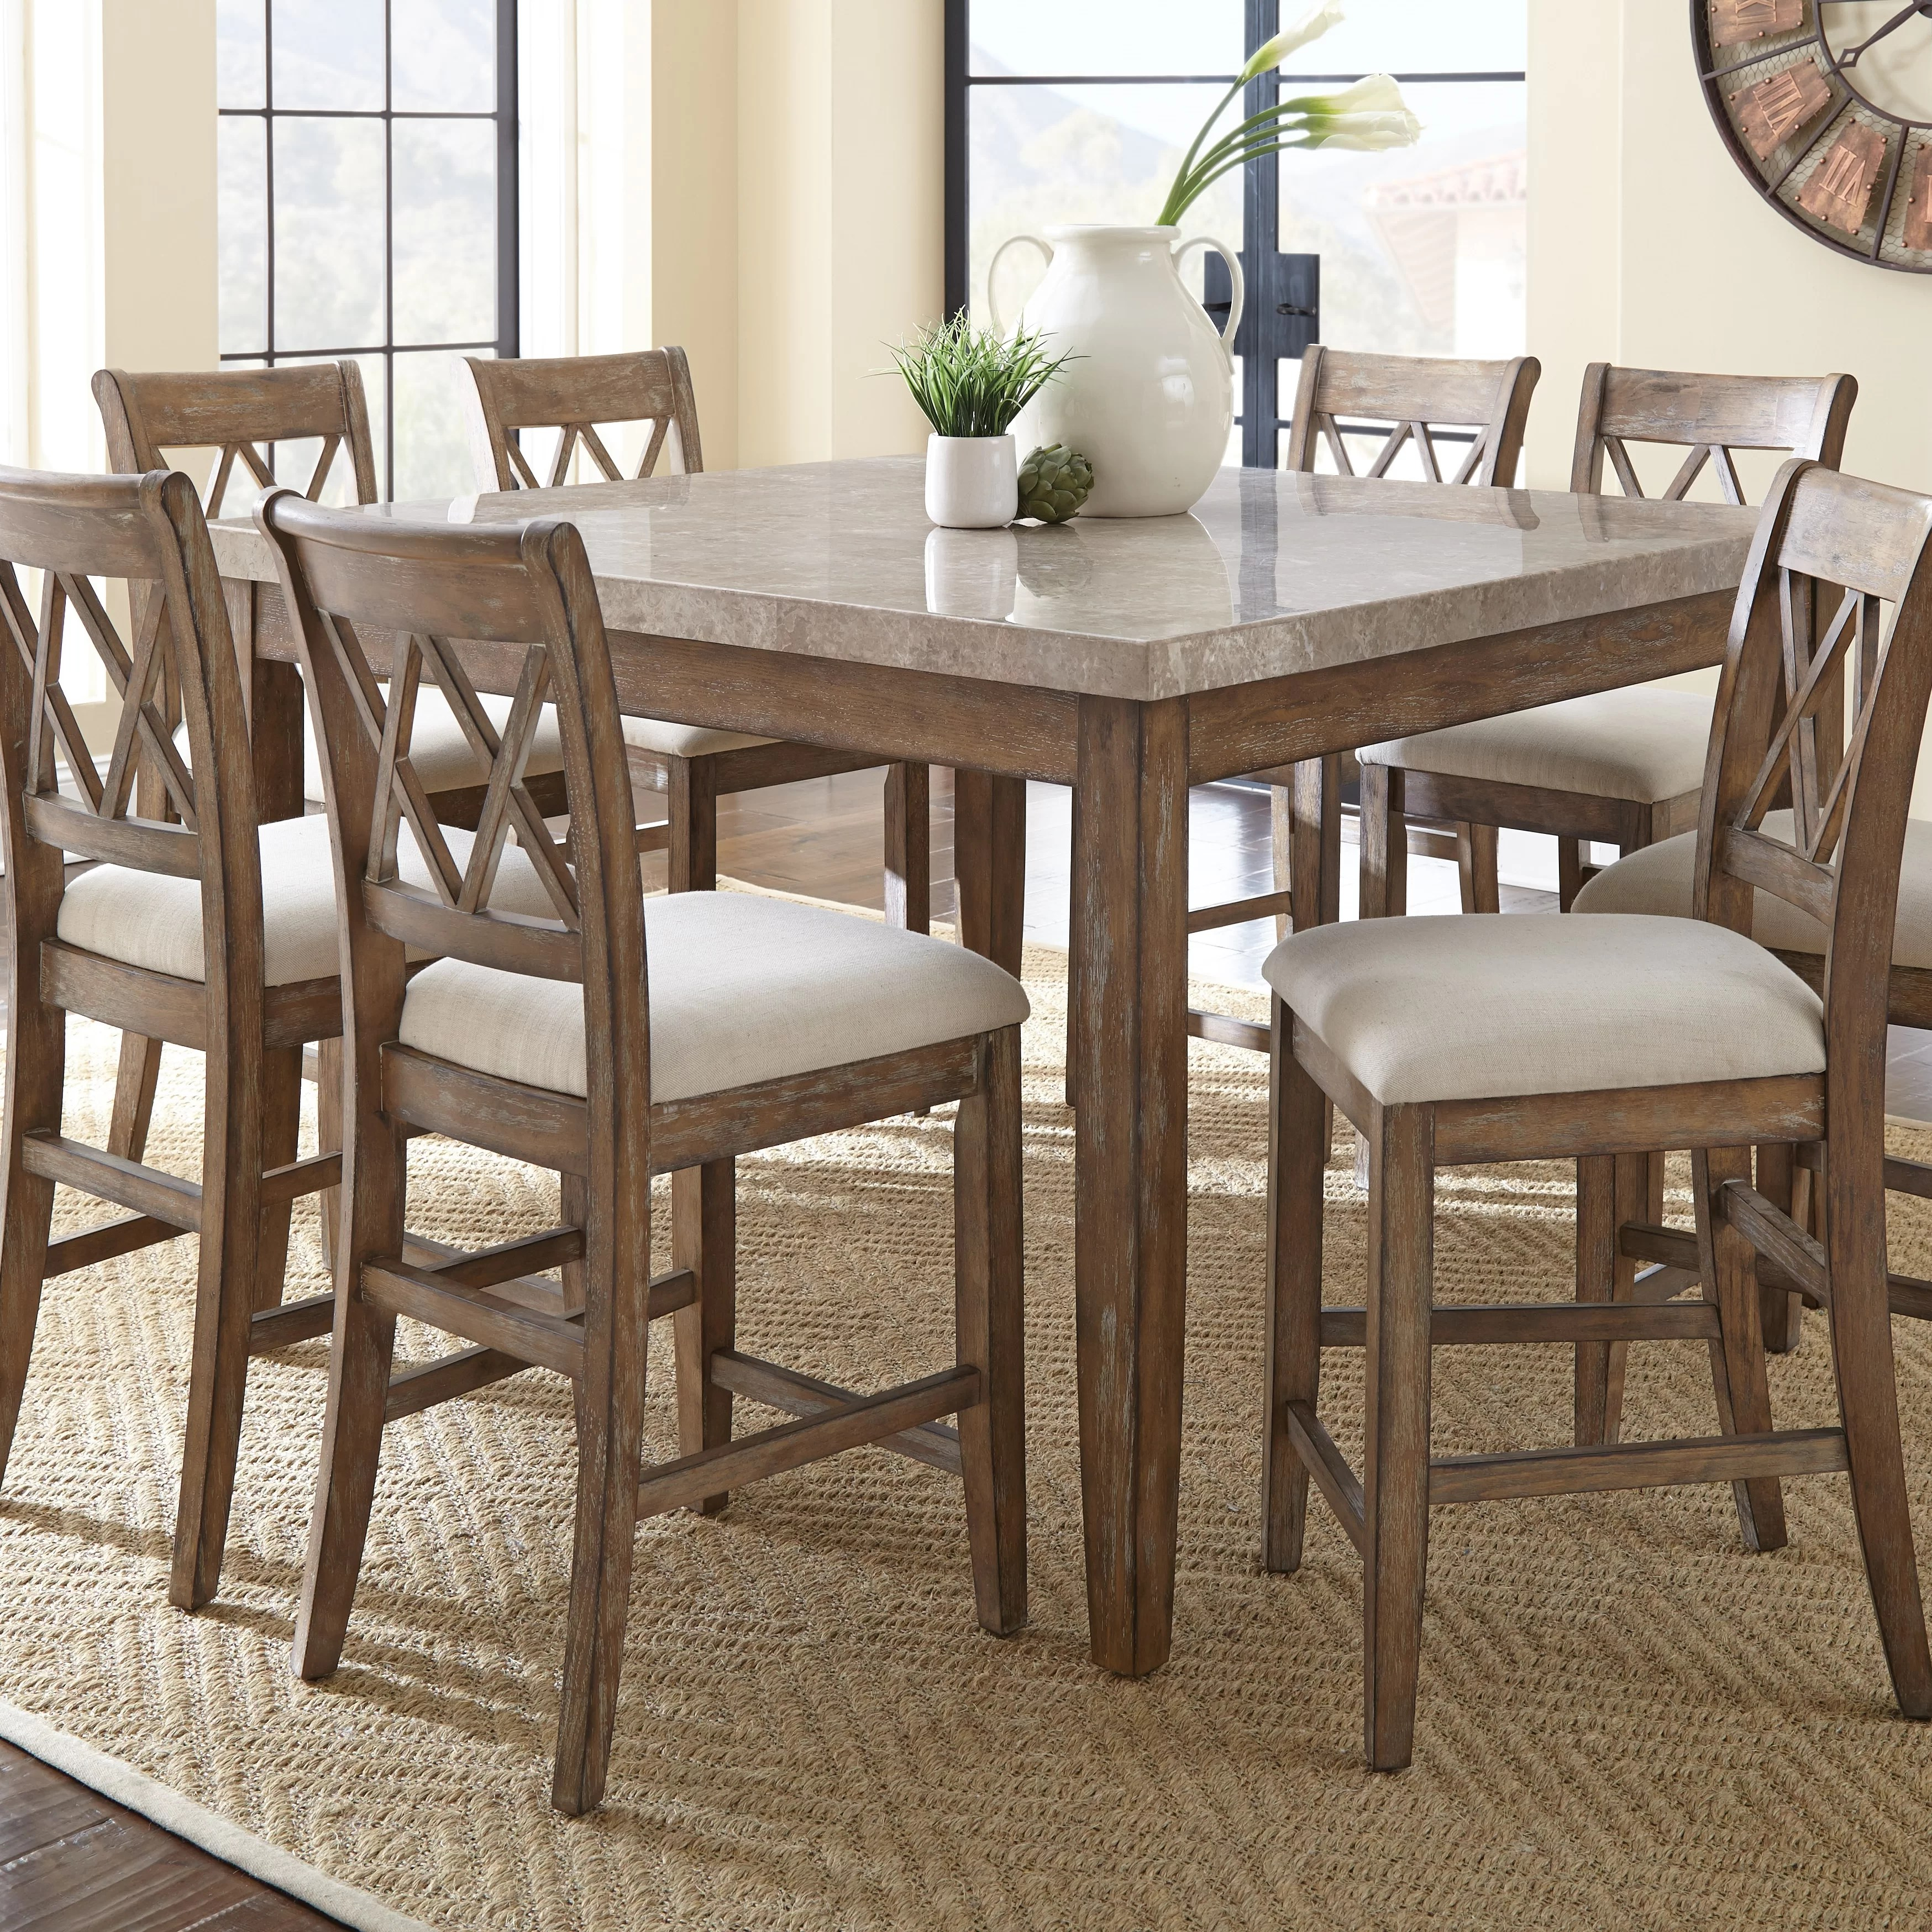 9 piece kitchen dining room sets c a~ counter height kitchen table Lewisville 9 Piece Counter Height Dining Set